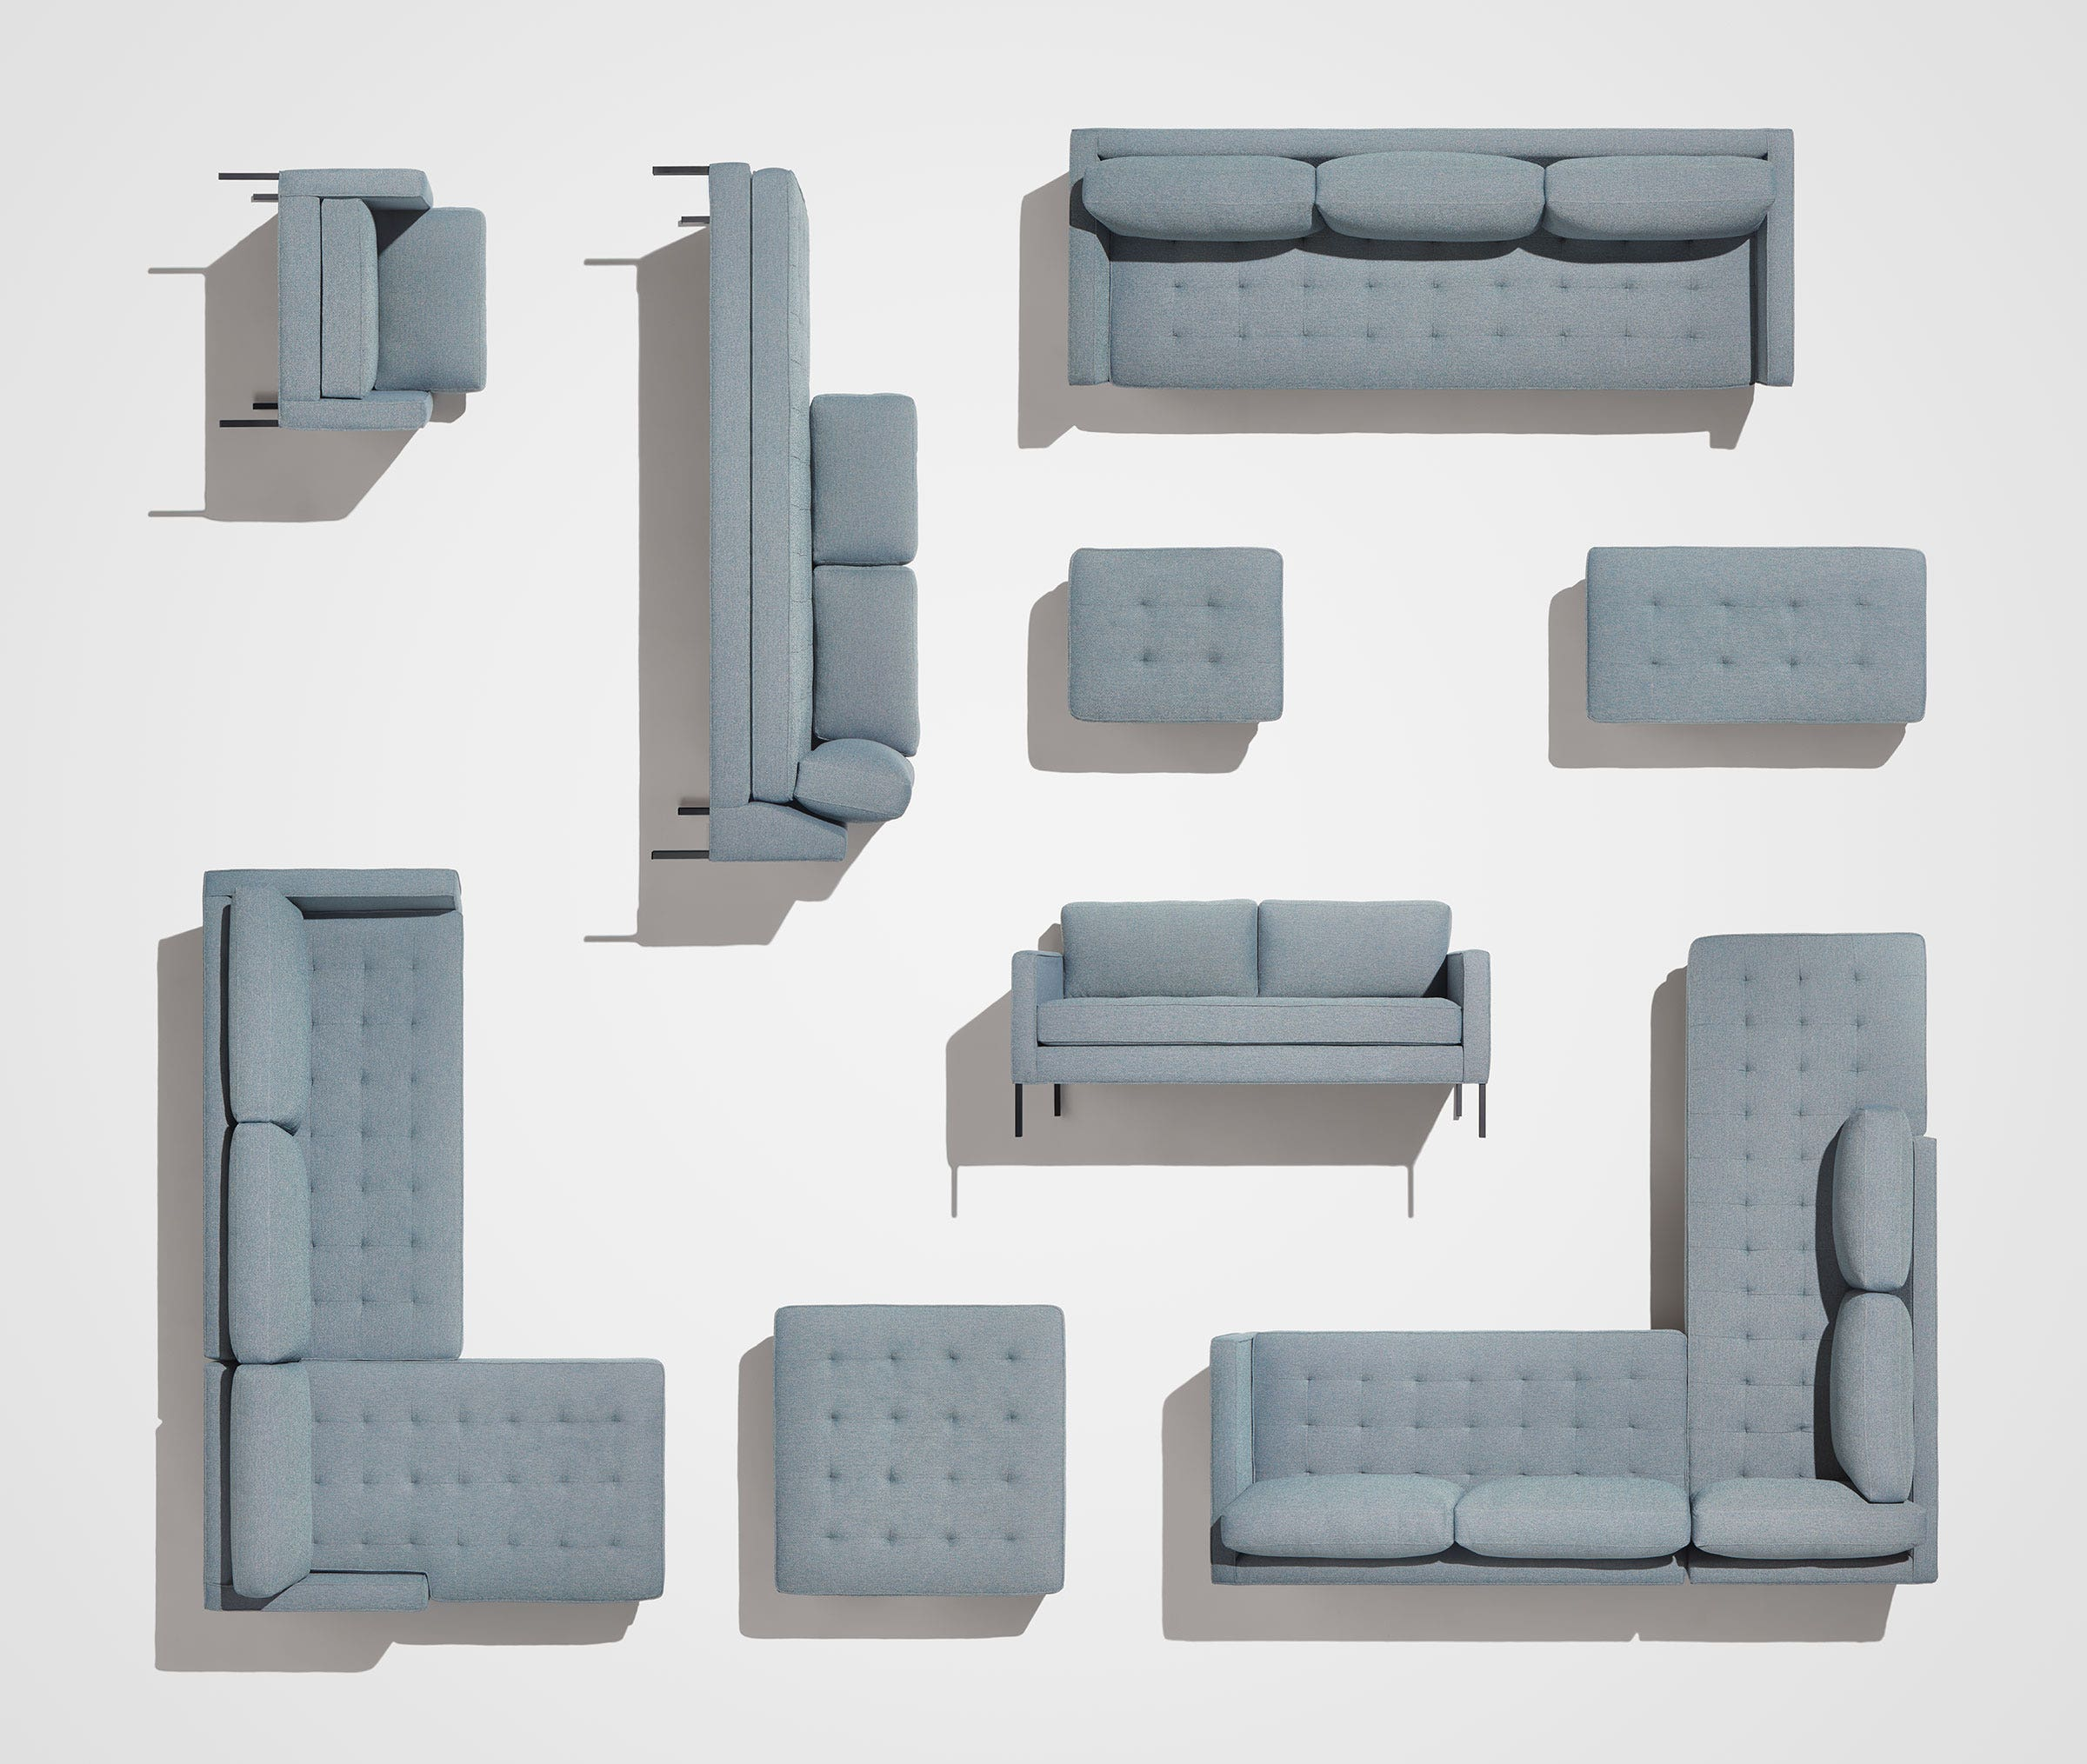 Paramount Tufted Sofa - Modern Tufted Sofa | Blu Dot